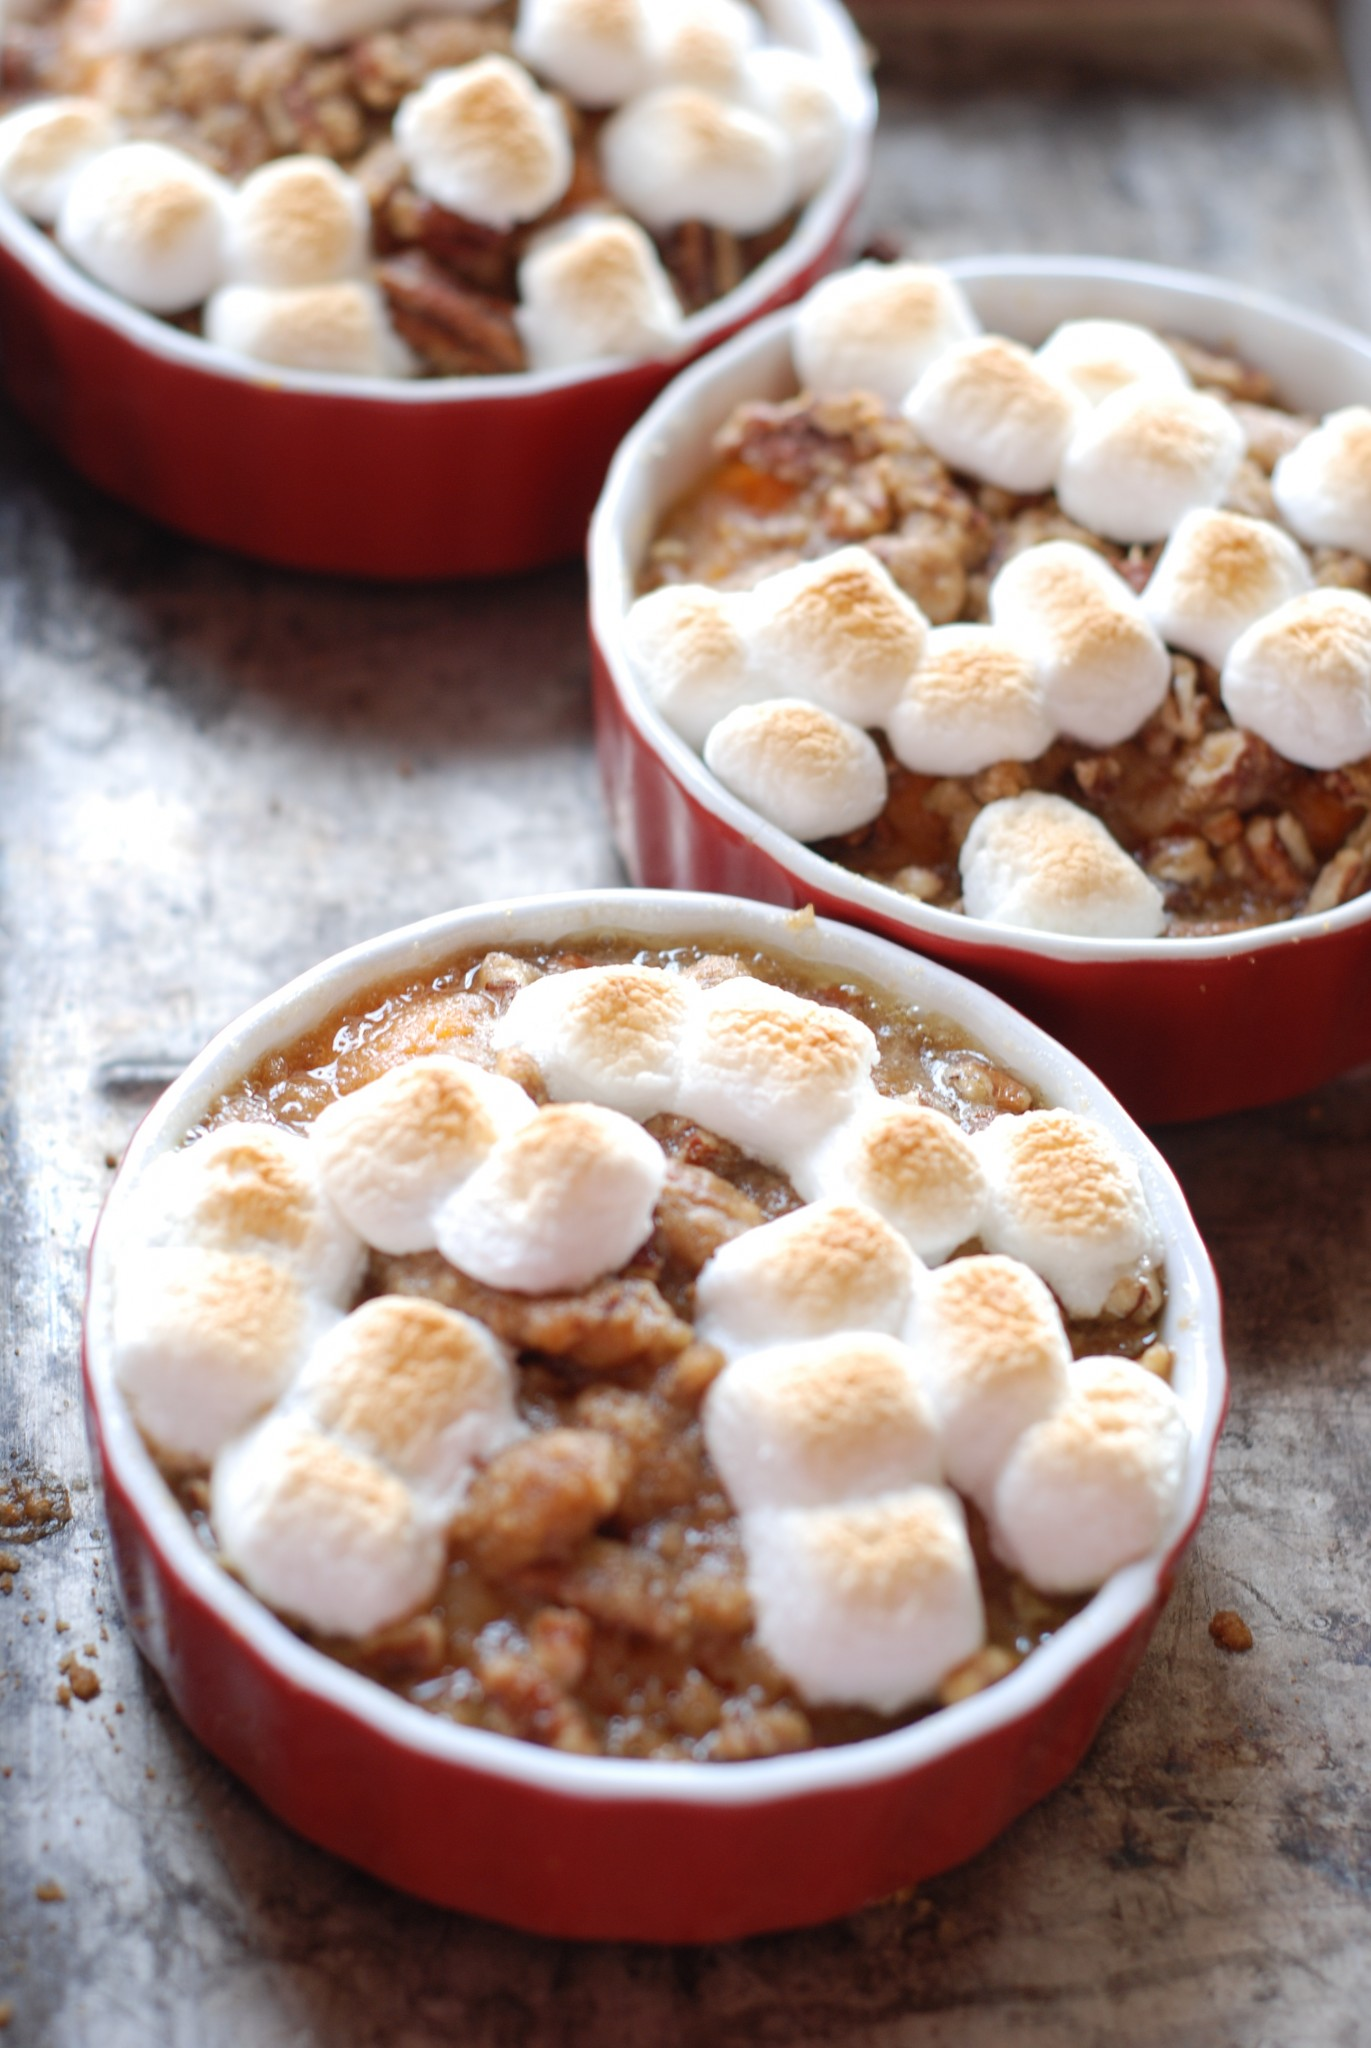 I never used to like sweet potatoes at Thanksgiving until I tried this recipe - Praline Sweet Potatoes with Toasted Marshmallows is the best!